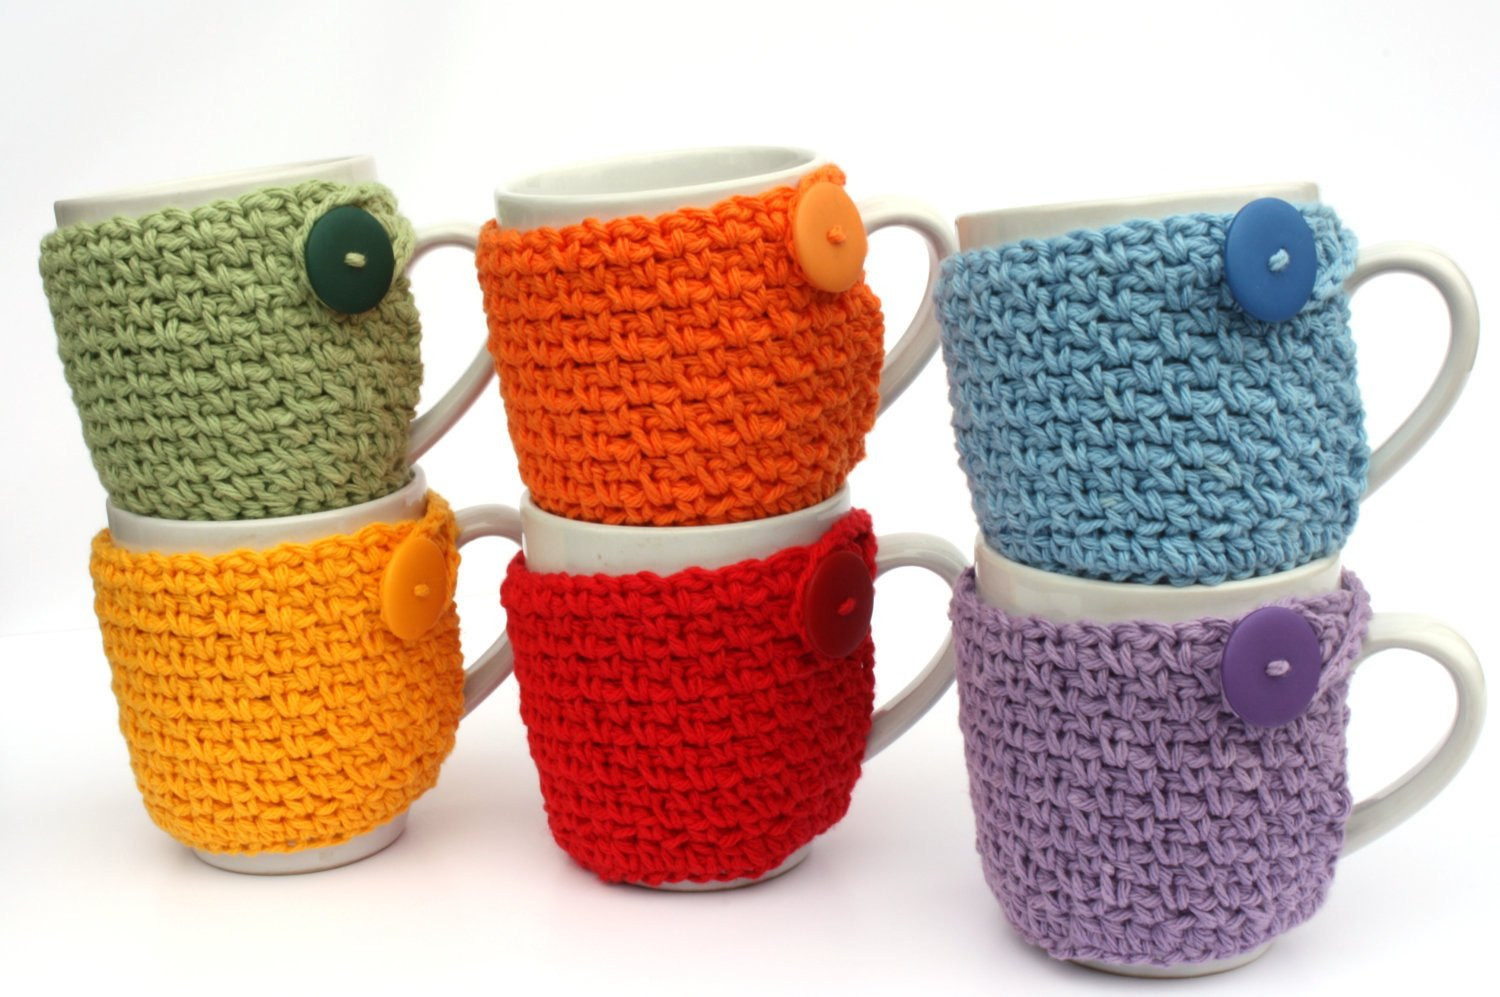 Crochet Coffee Cup Cozy Lovely Coffee Cup Cozy Crochet Cup Sleeve You Pick the by Sweetbriers Of Crochet Coffee Cup Cozy Fresh 20 Cool Crochet Coffee Cozy Ideas & Tutorials Hative